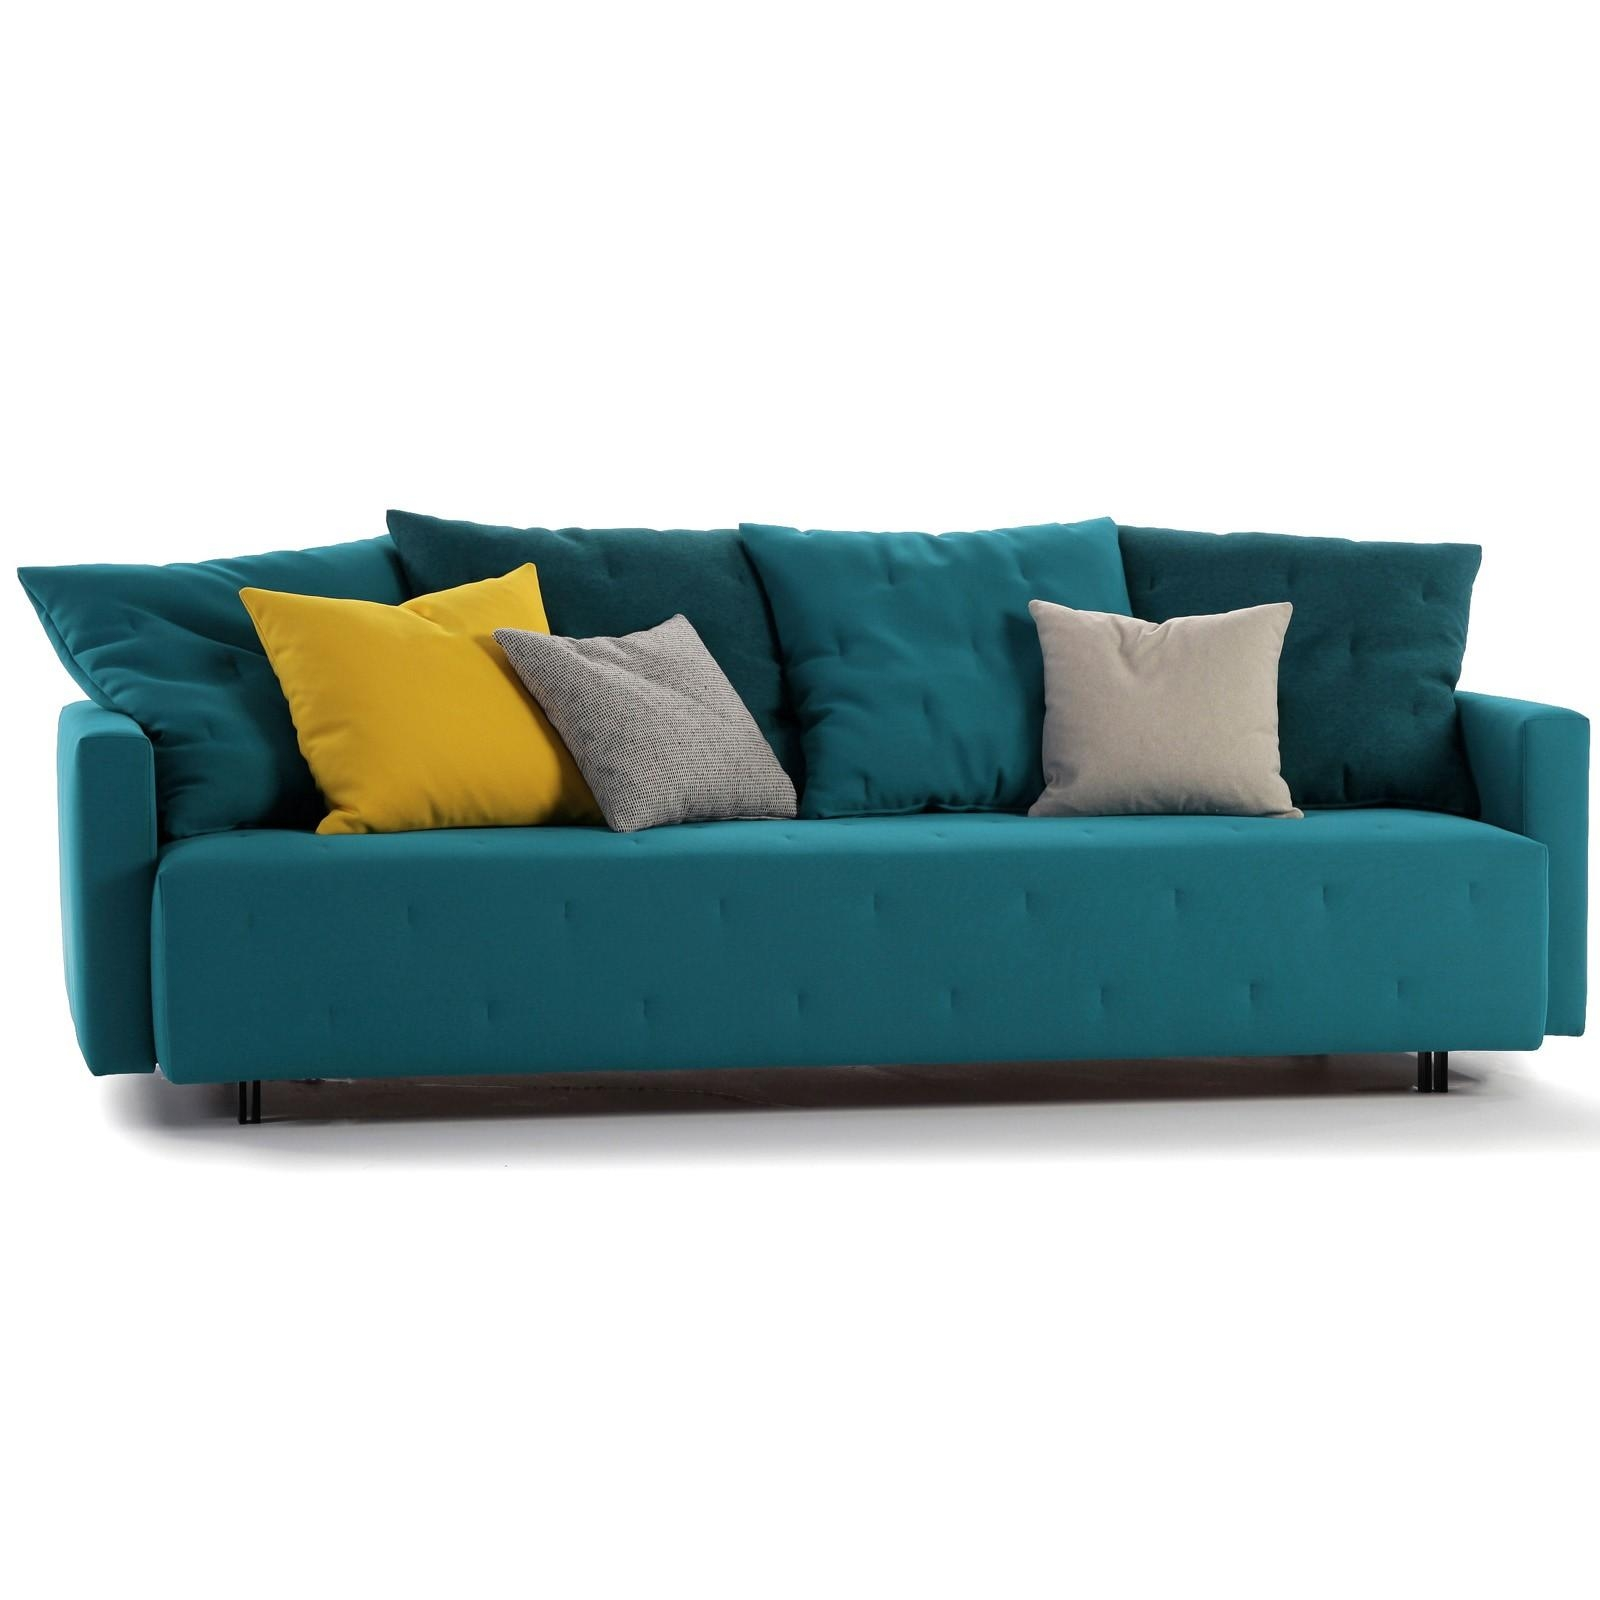 Nap - Ke-Zu Furniture | Residential And Contract Furniture throughout Aqua Sofa Beds